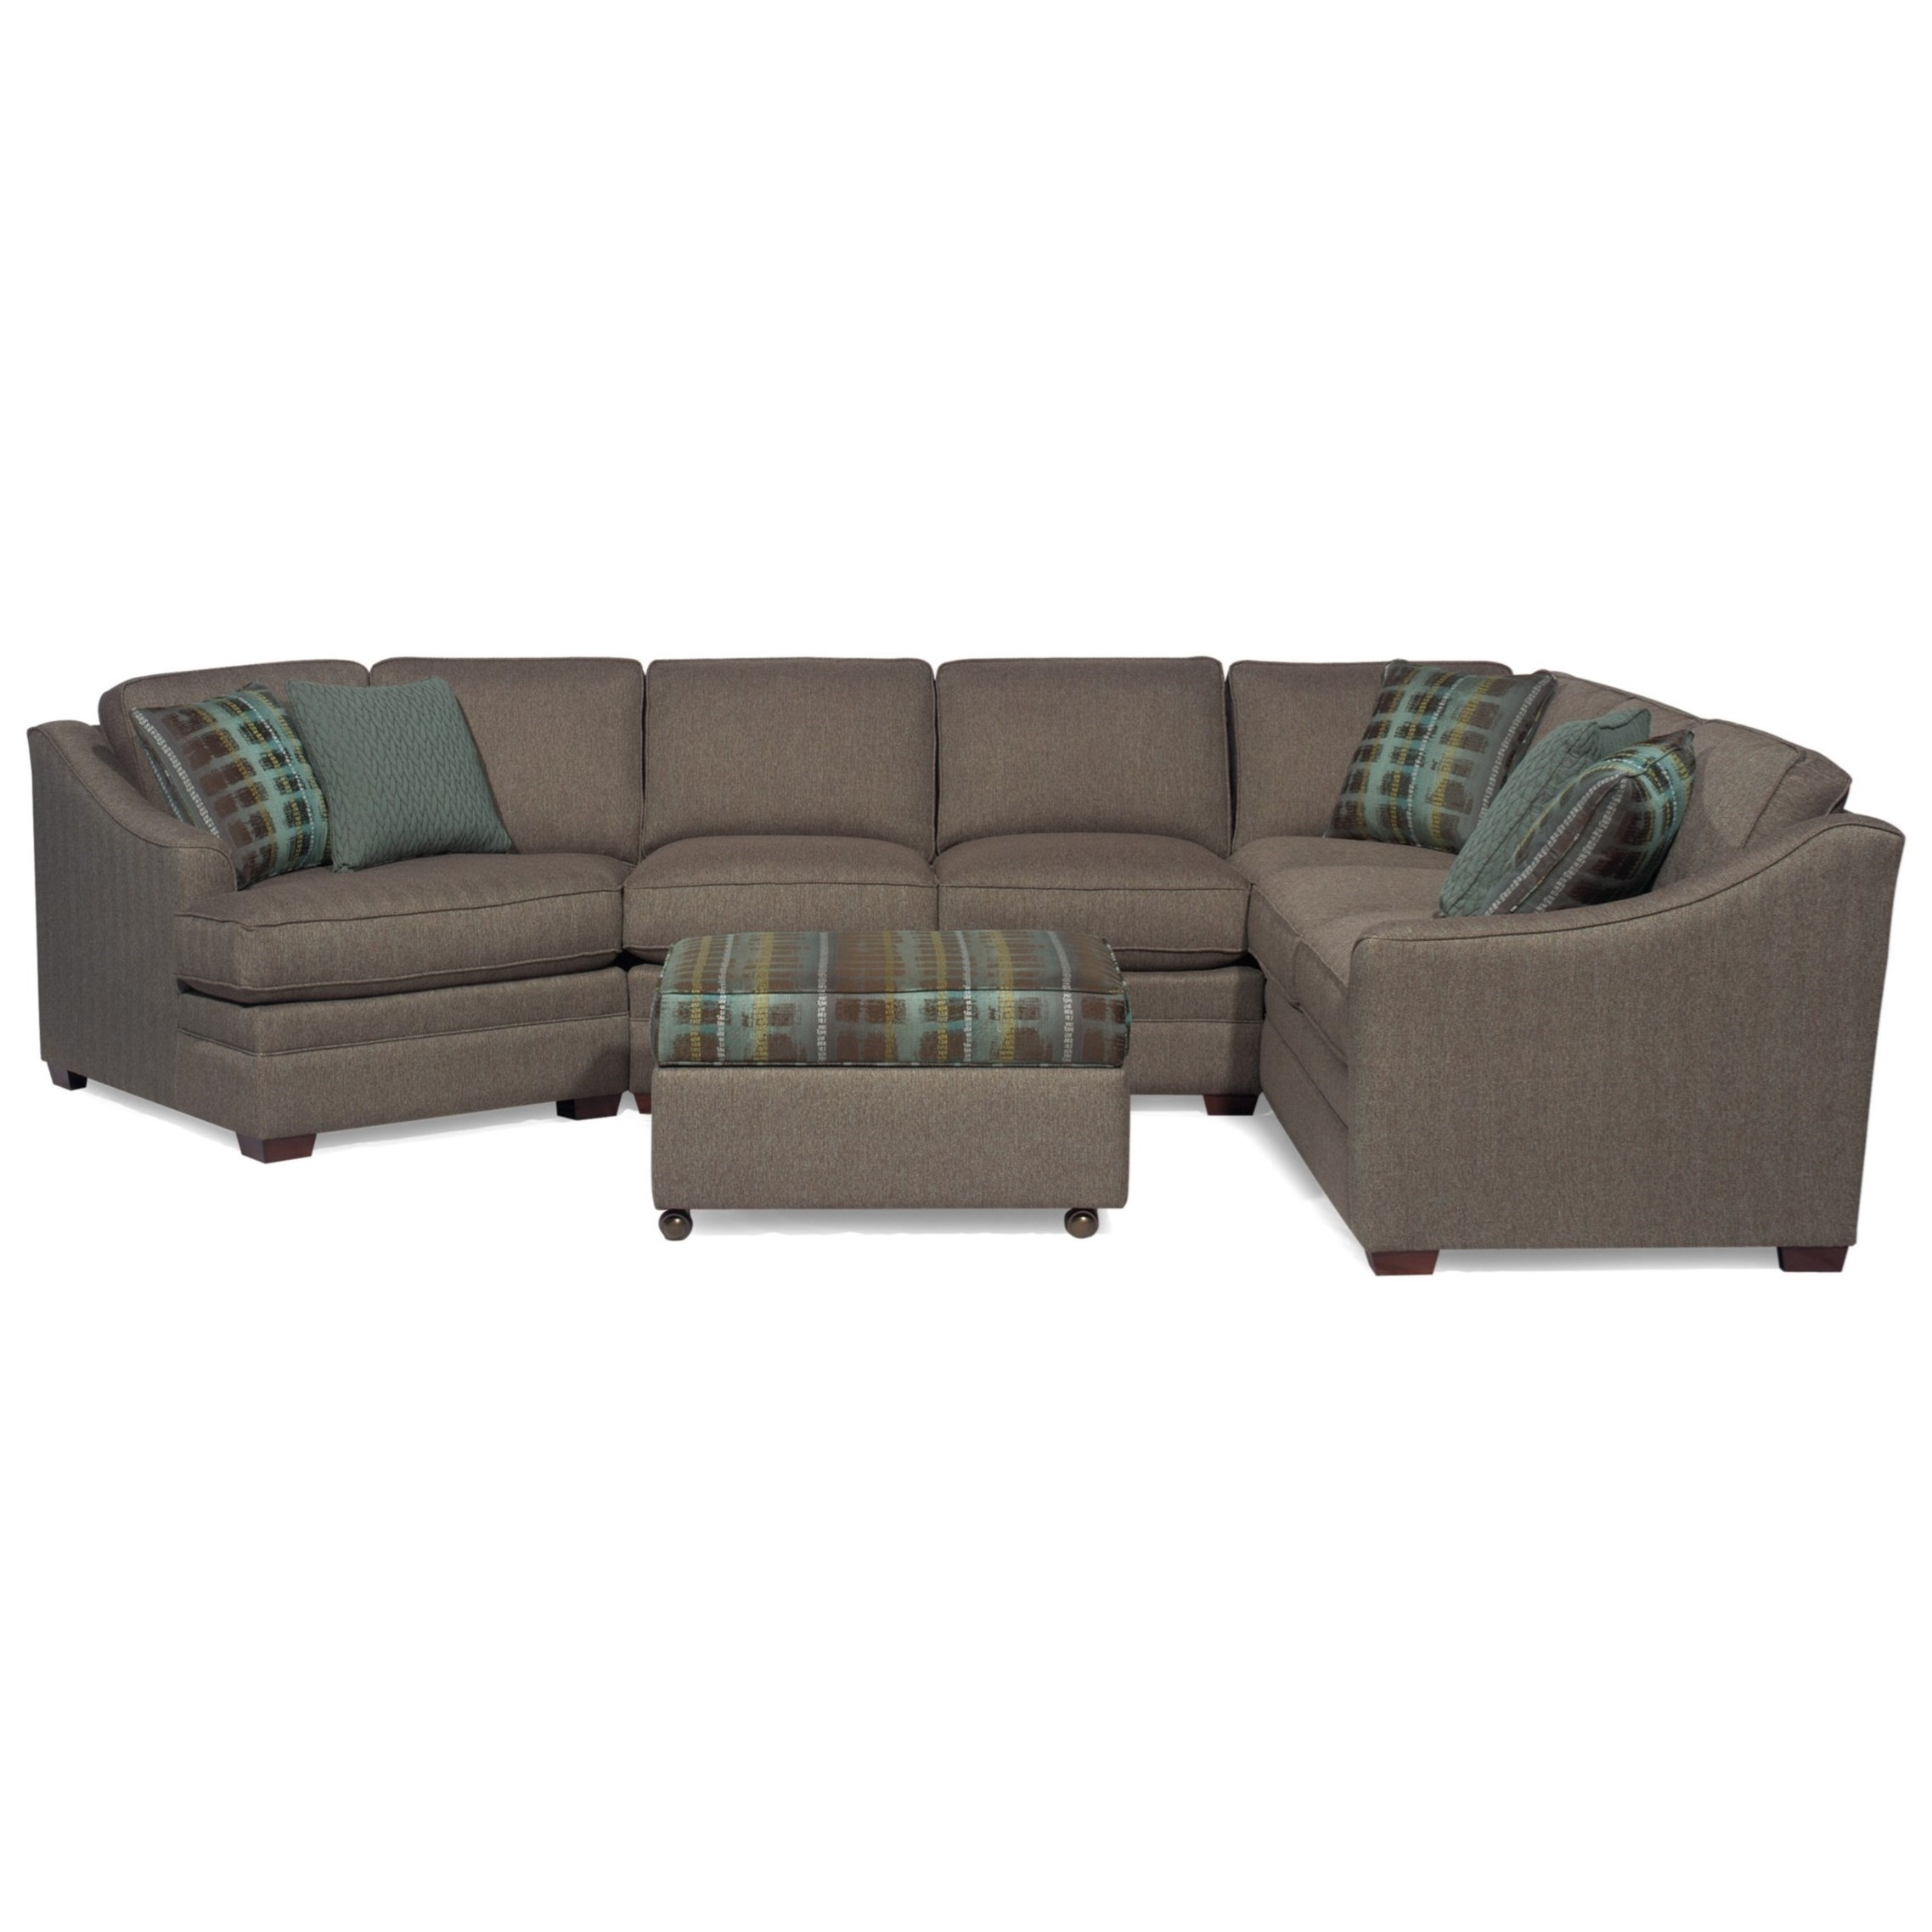 Craftmaster F9 Design Options <B>Customizable</b> 3-Piece Sectional within Avery 2 Piece Sectionals With Laf Armless Chaise (Image 10 of 30)